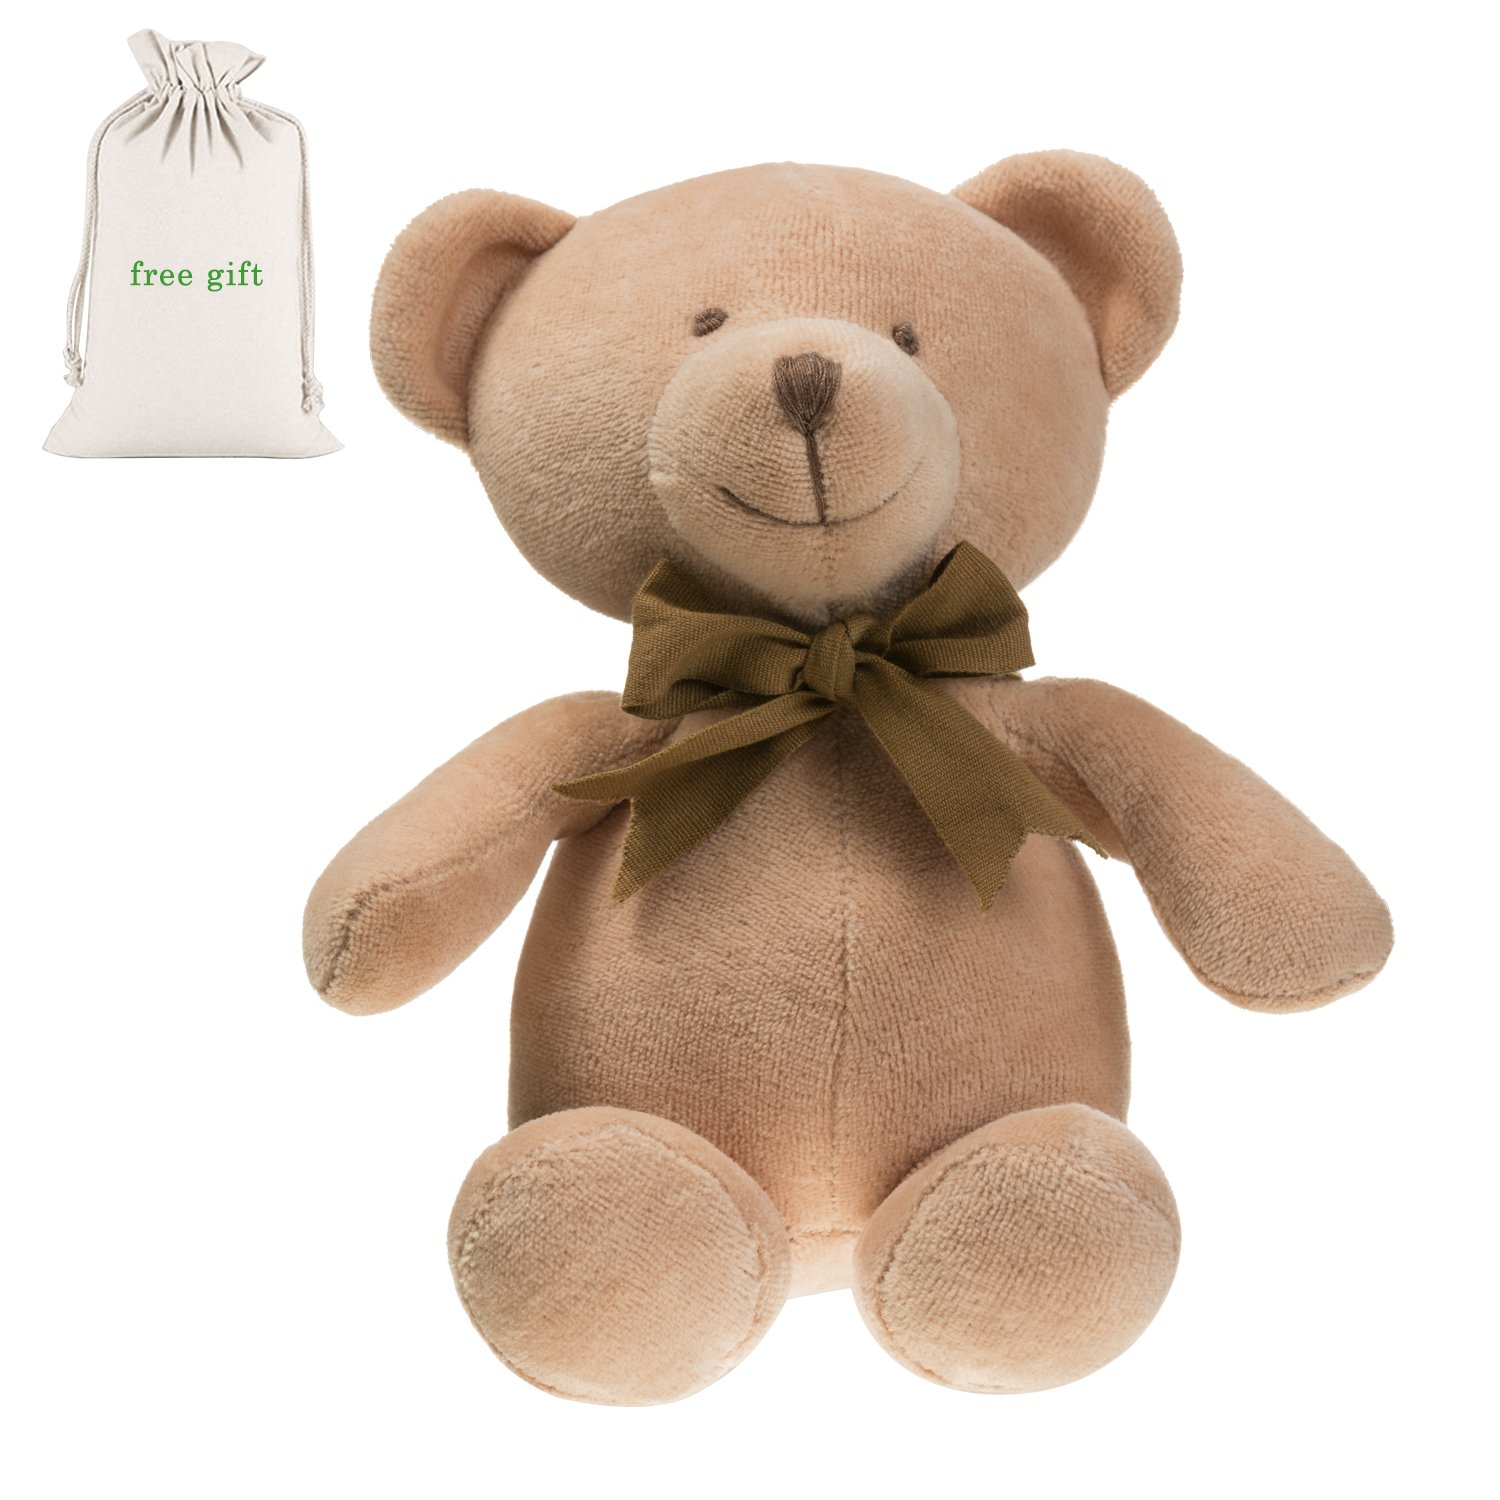 Benaturalbaby 100% Organic Cotton Stuffed Animal Plush Teddy Bear (Baby First Lovely Teddy Bear), 7.9 inch